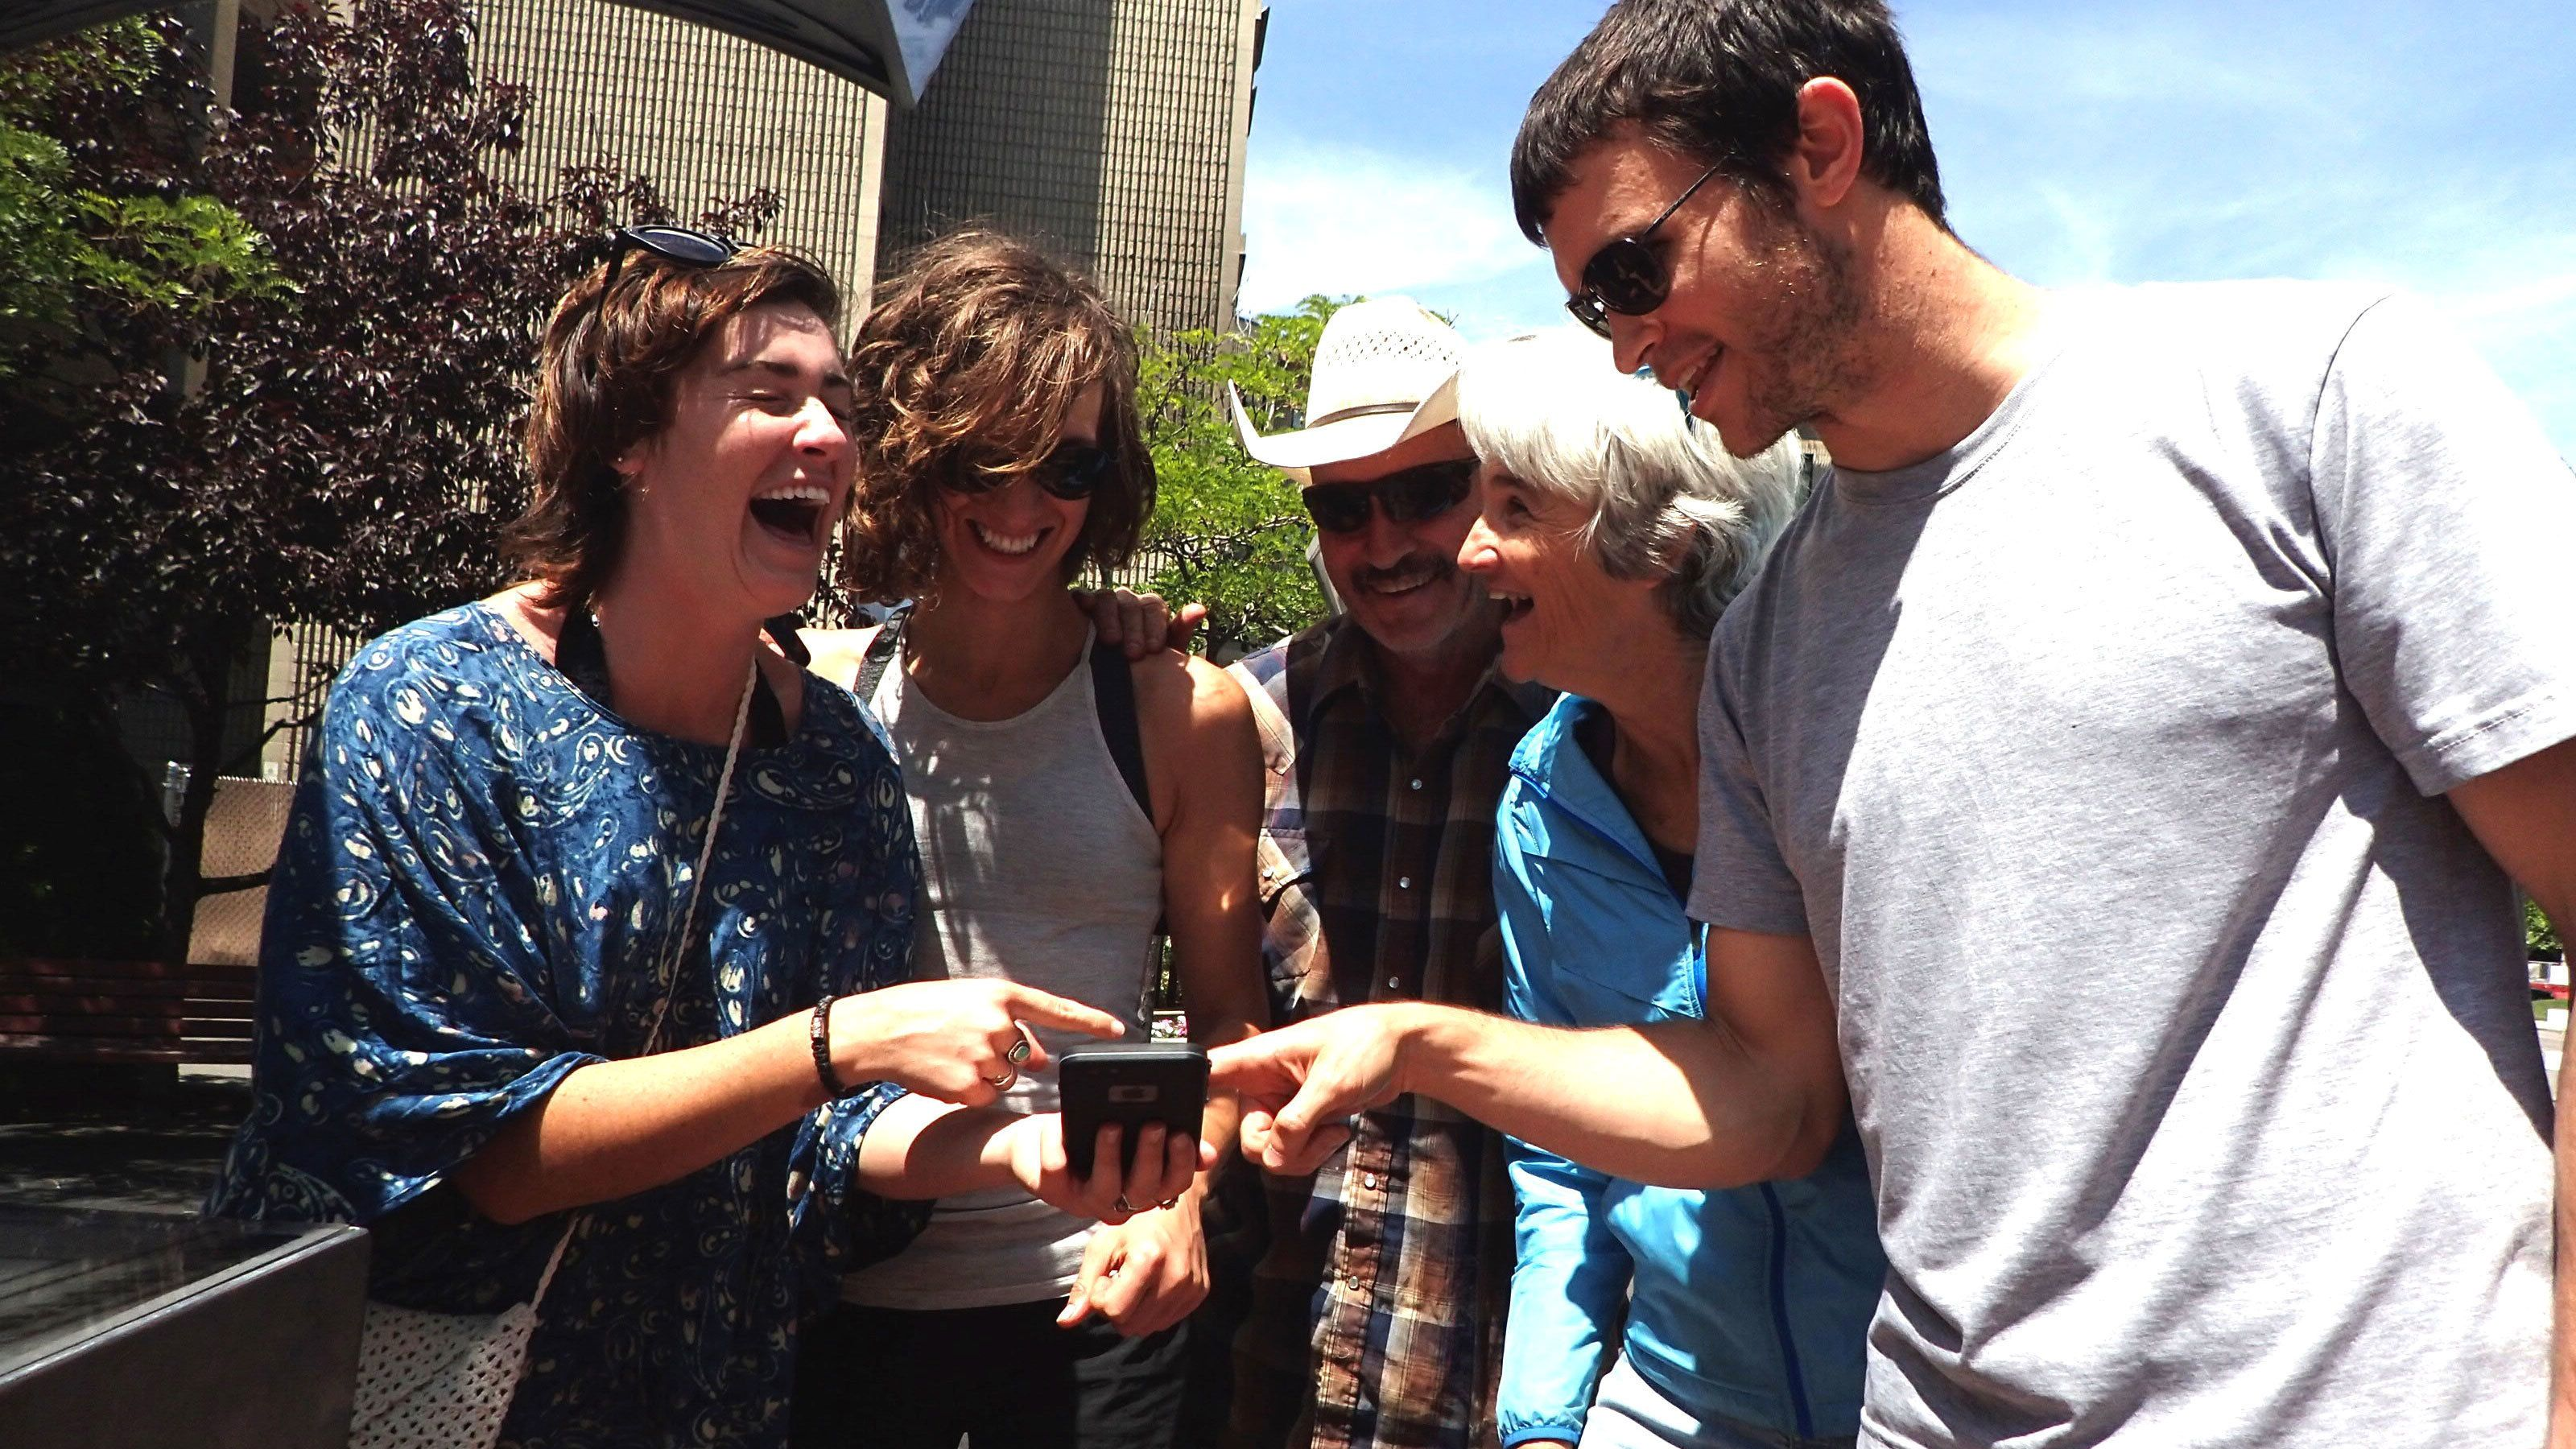 Laughing group on a scavenger hunt in Boise